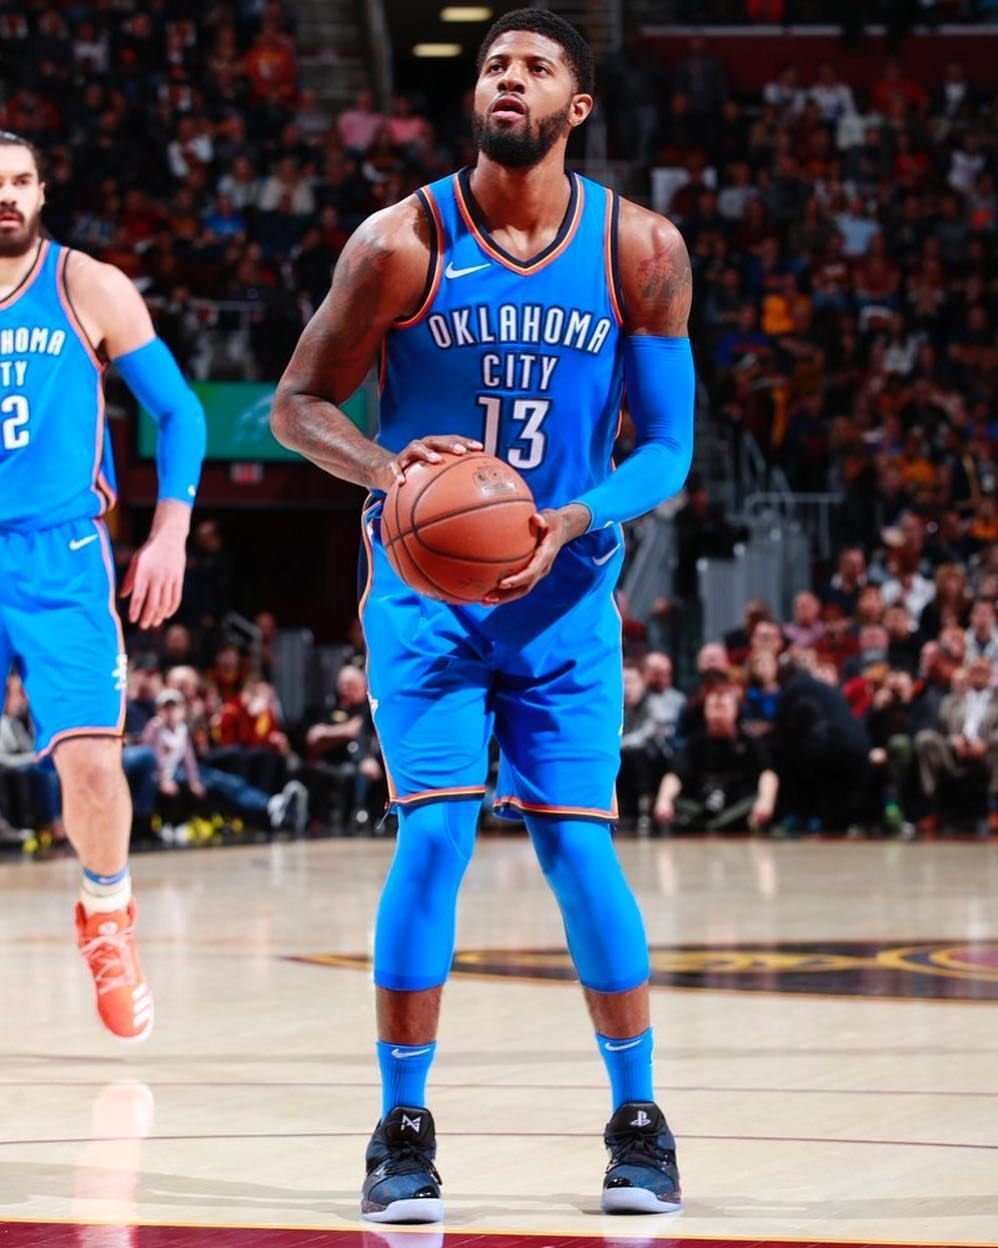 354 1 Mil Curtidas 2 142 Comentarios Paul George Ygtrece No Instagram Shoutout The Boys On The Win Paul George Basketball Moves Basketball Players Nba